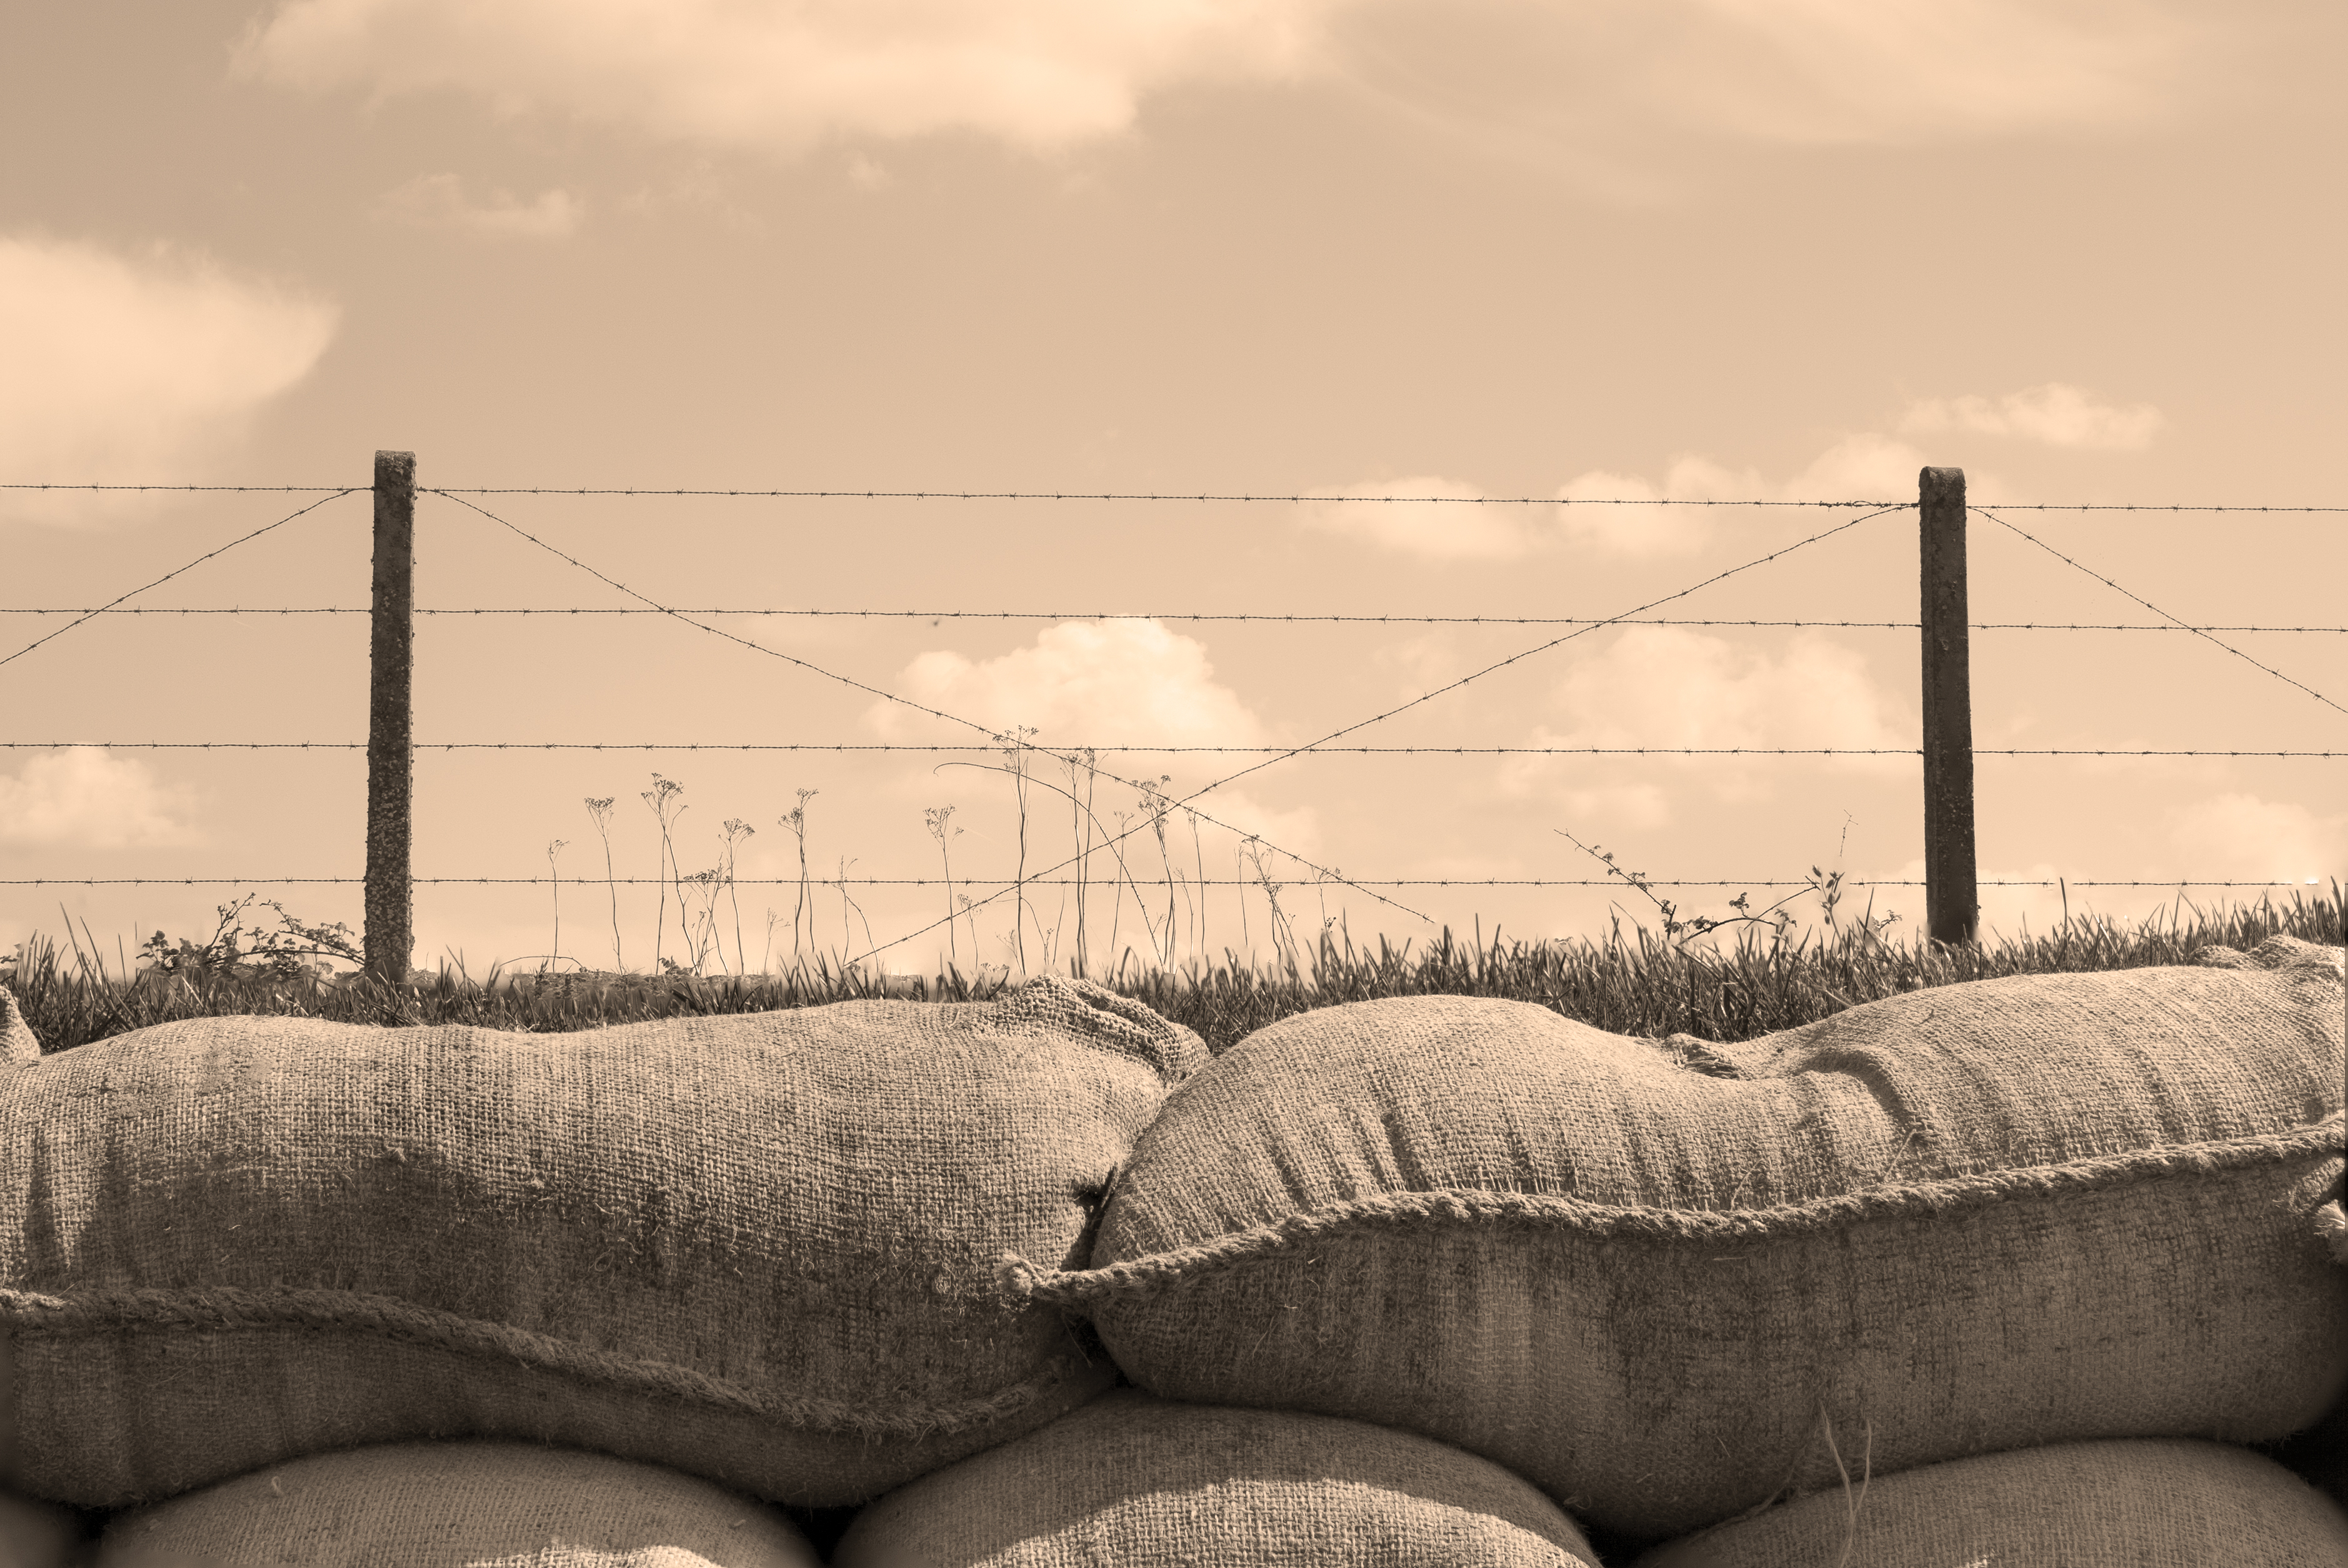 WWI Trenches of death world war one sandbags in Belgium - 660 NEWS